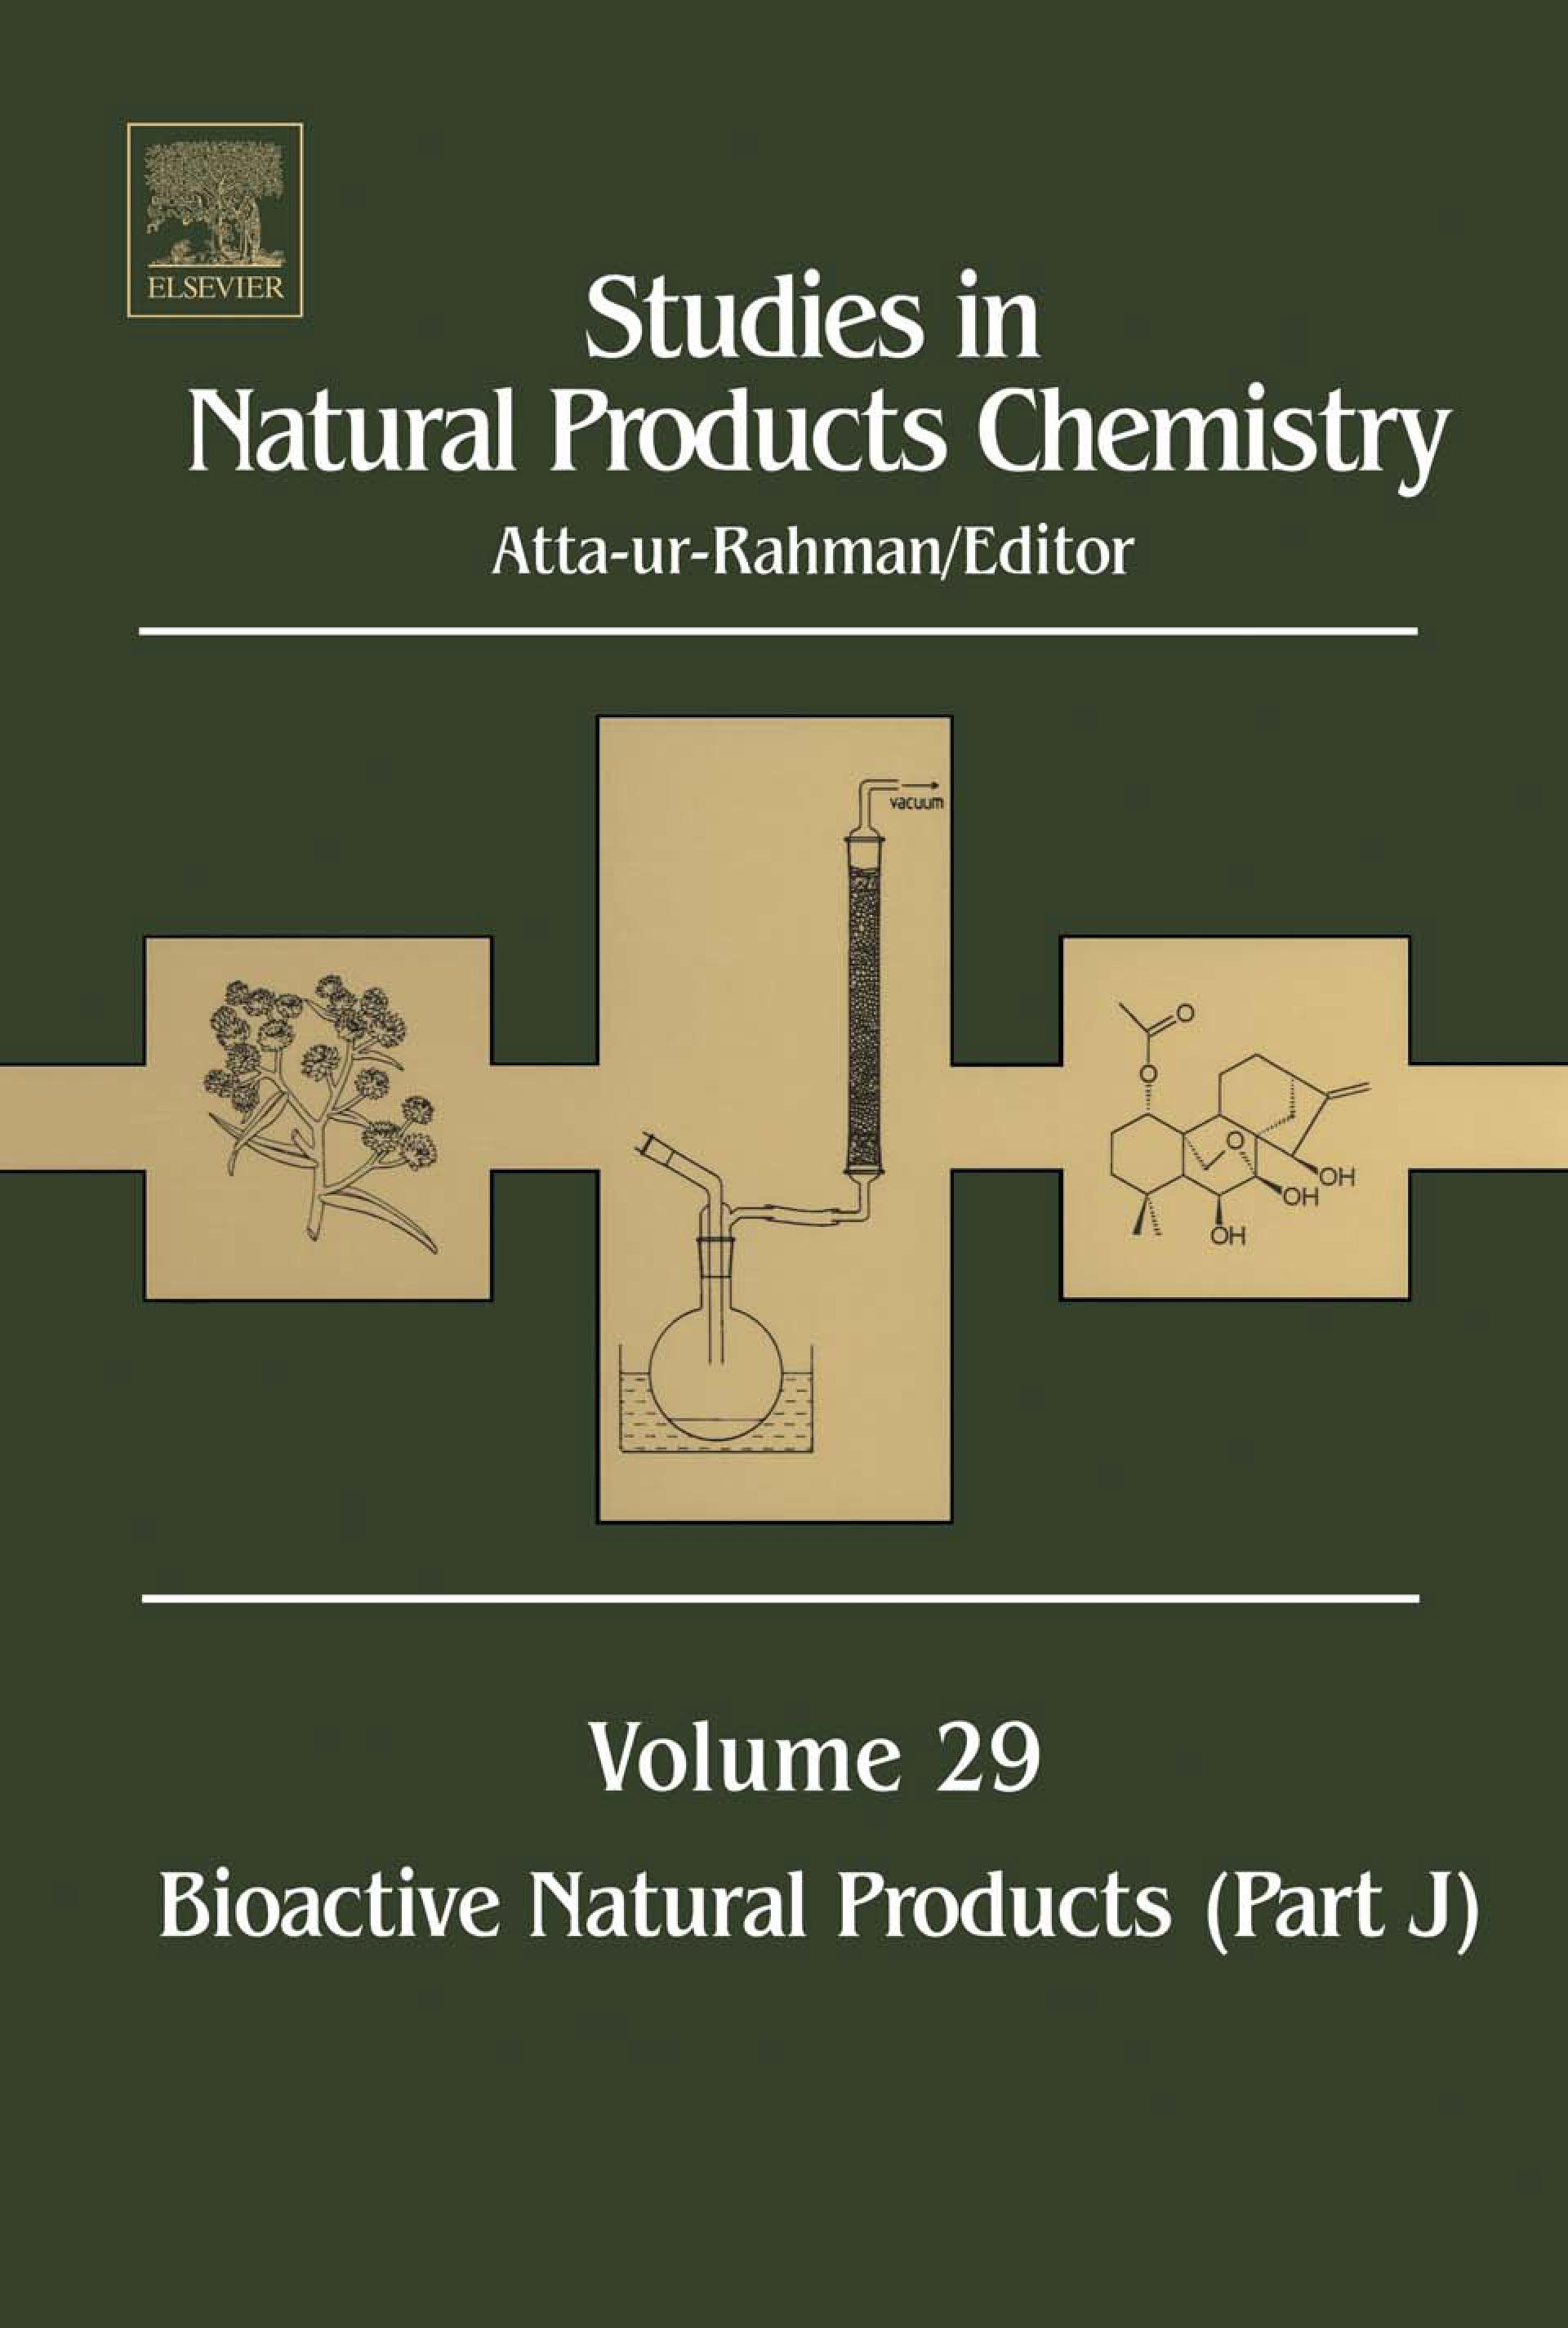 Studies in Natural Products Chemistry: Bioactive Natural Products (Part J) EB9780080542072